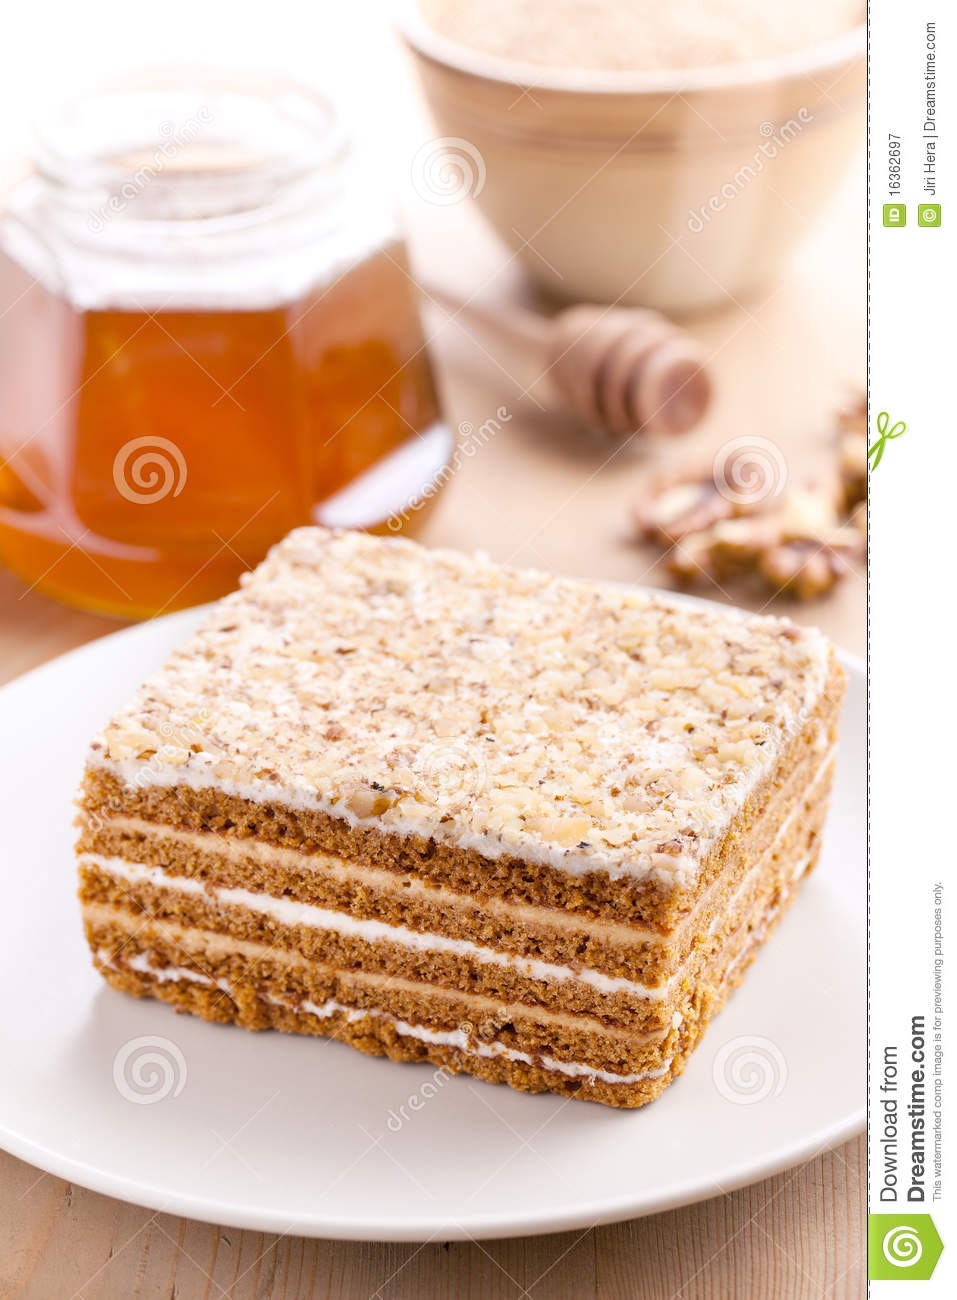 Clipart Of Honey Cake : Honey Cake Royalty Free Stock Photography - Image: 16362697